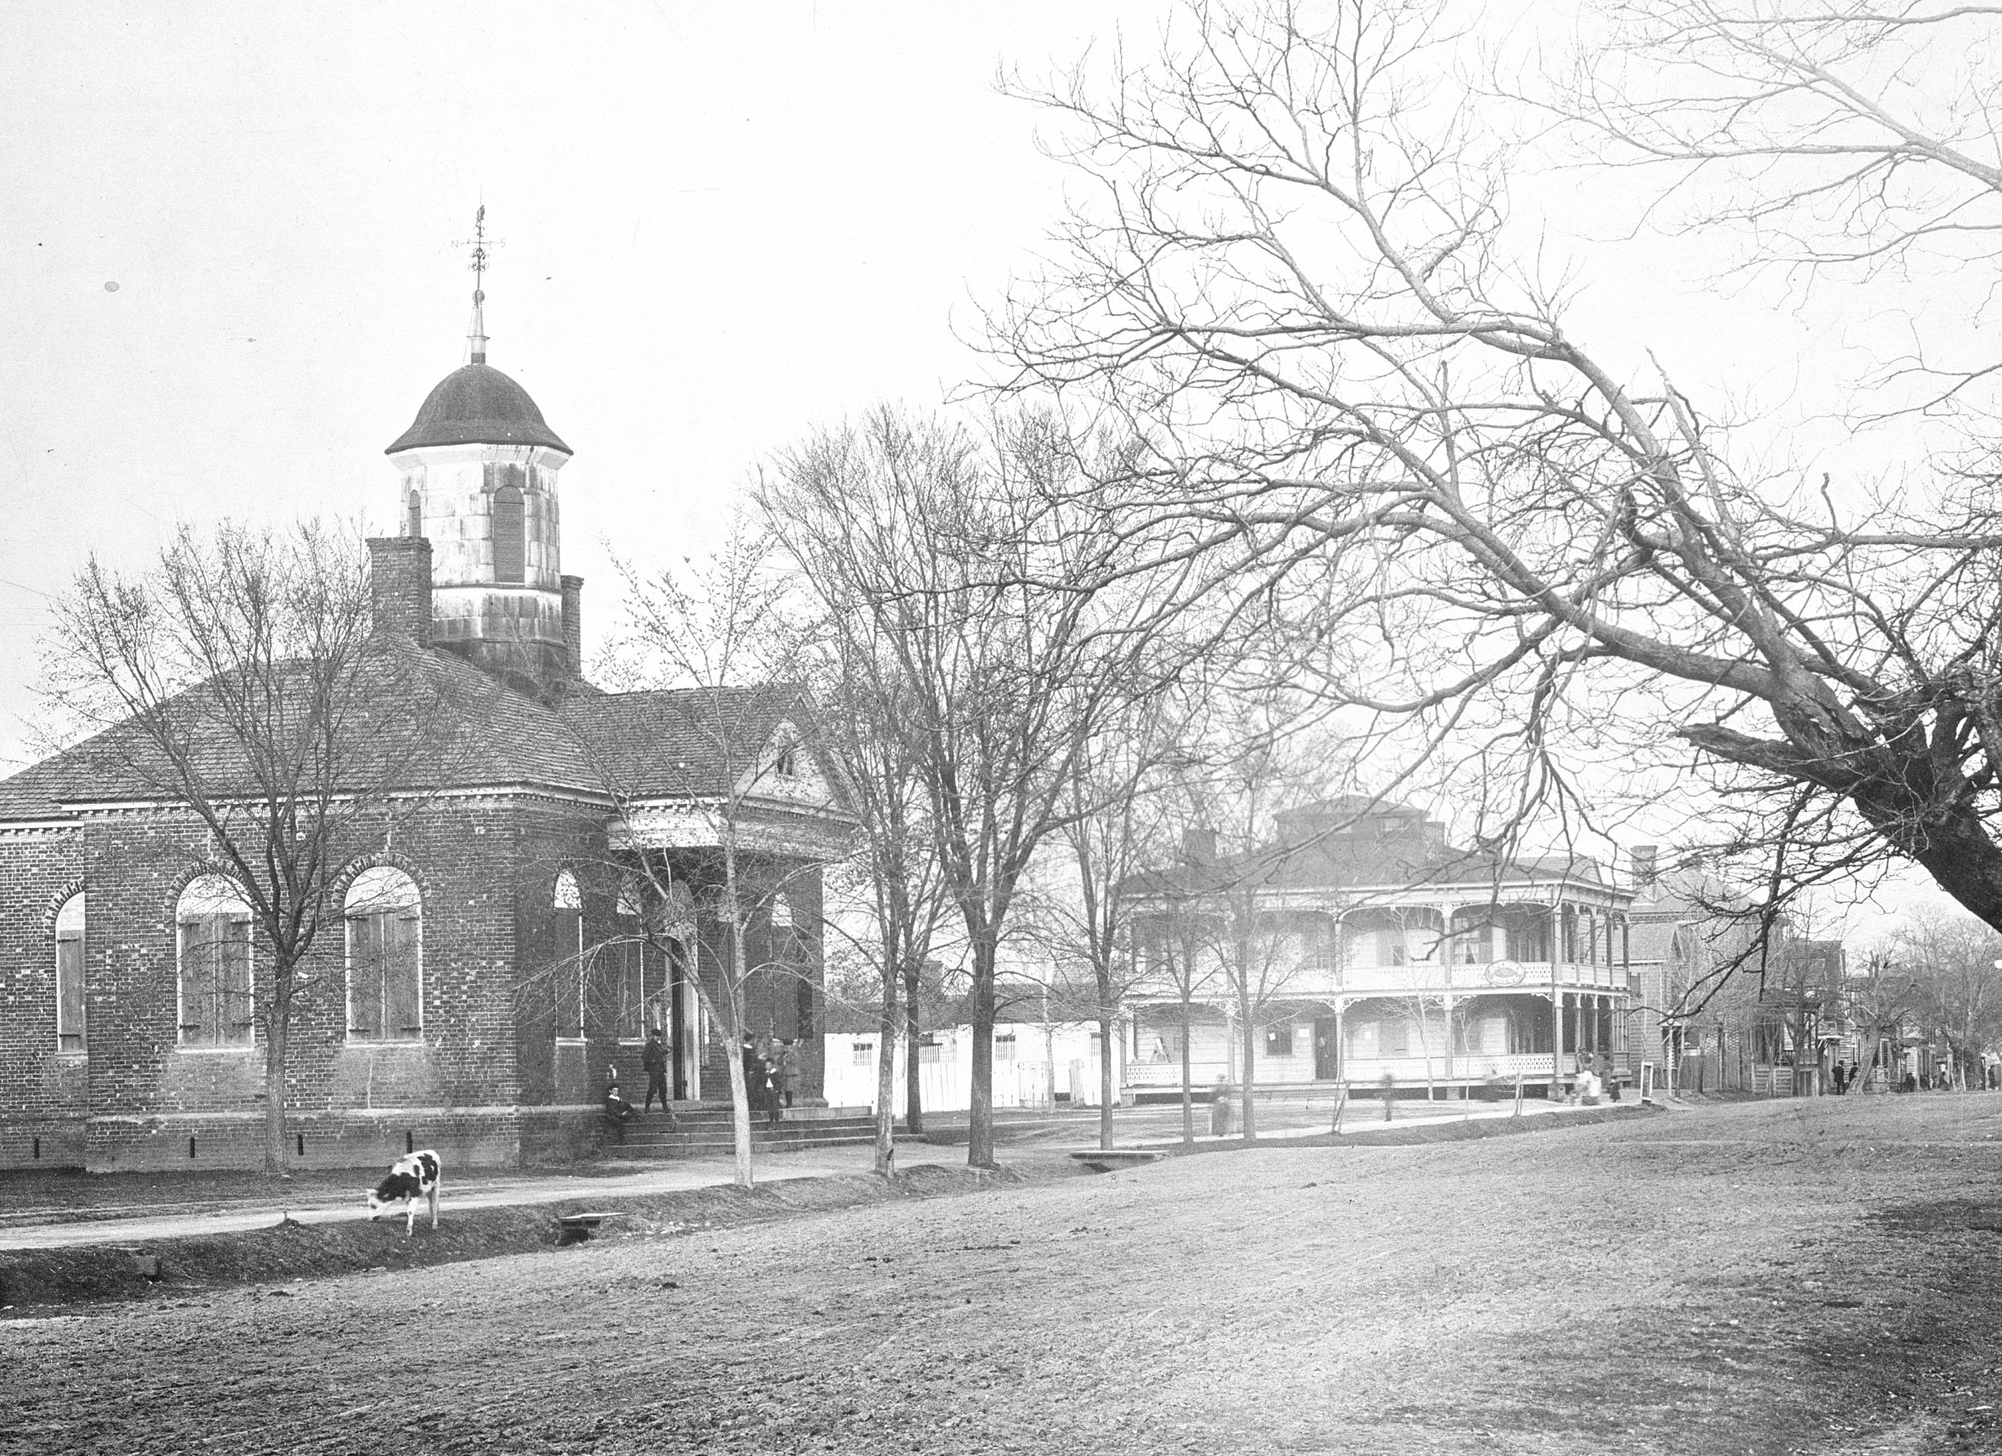 View looking east on Main Street of the 1770 Courthouse and Spencer Hotel (Mr. Harrell's Lodging House in 1860), ca. 1890s